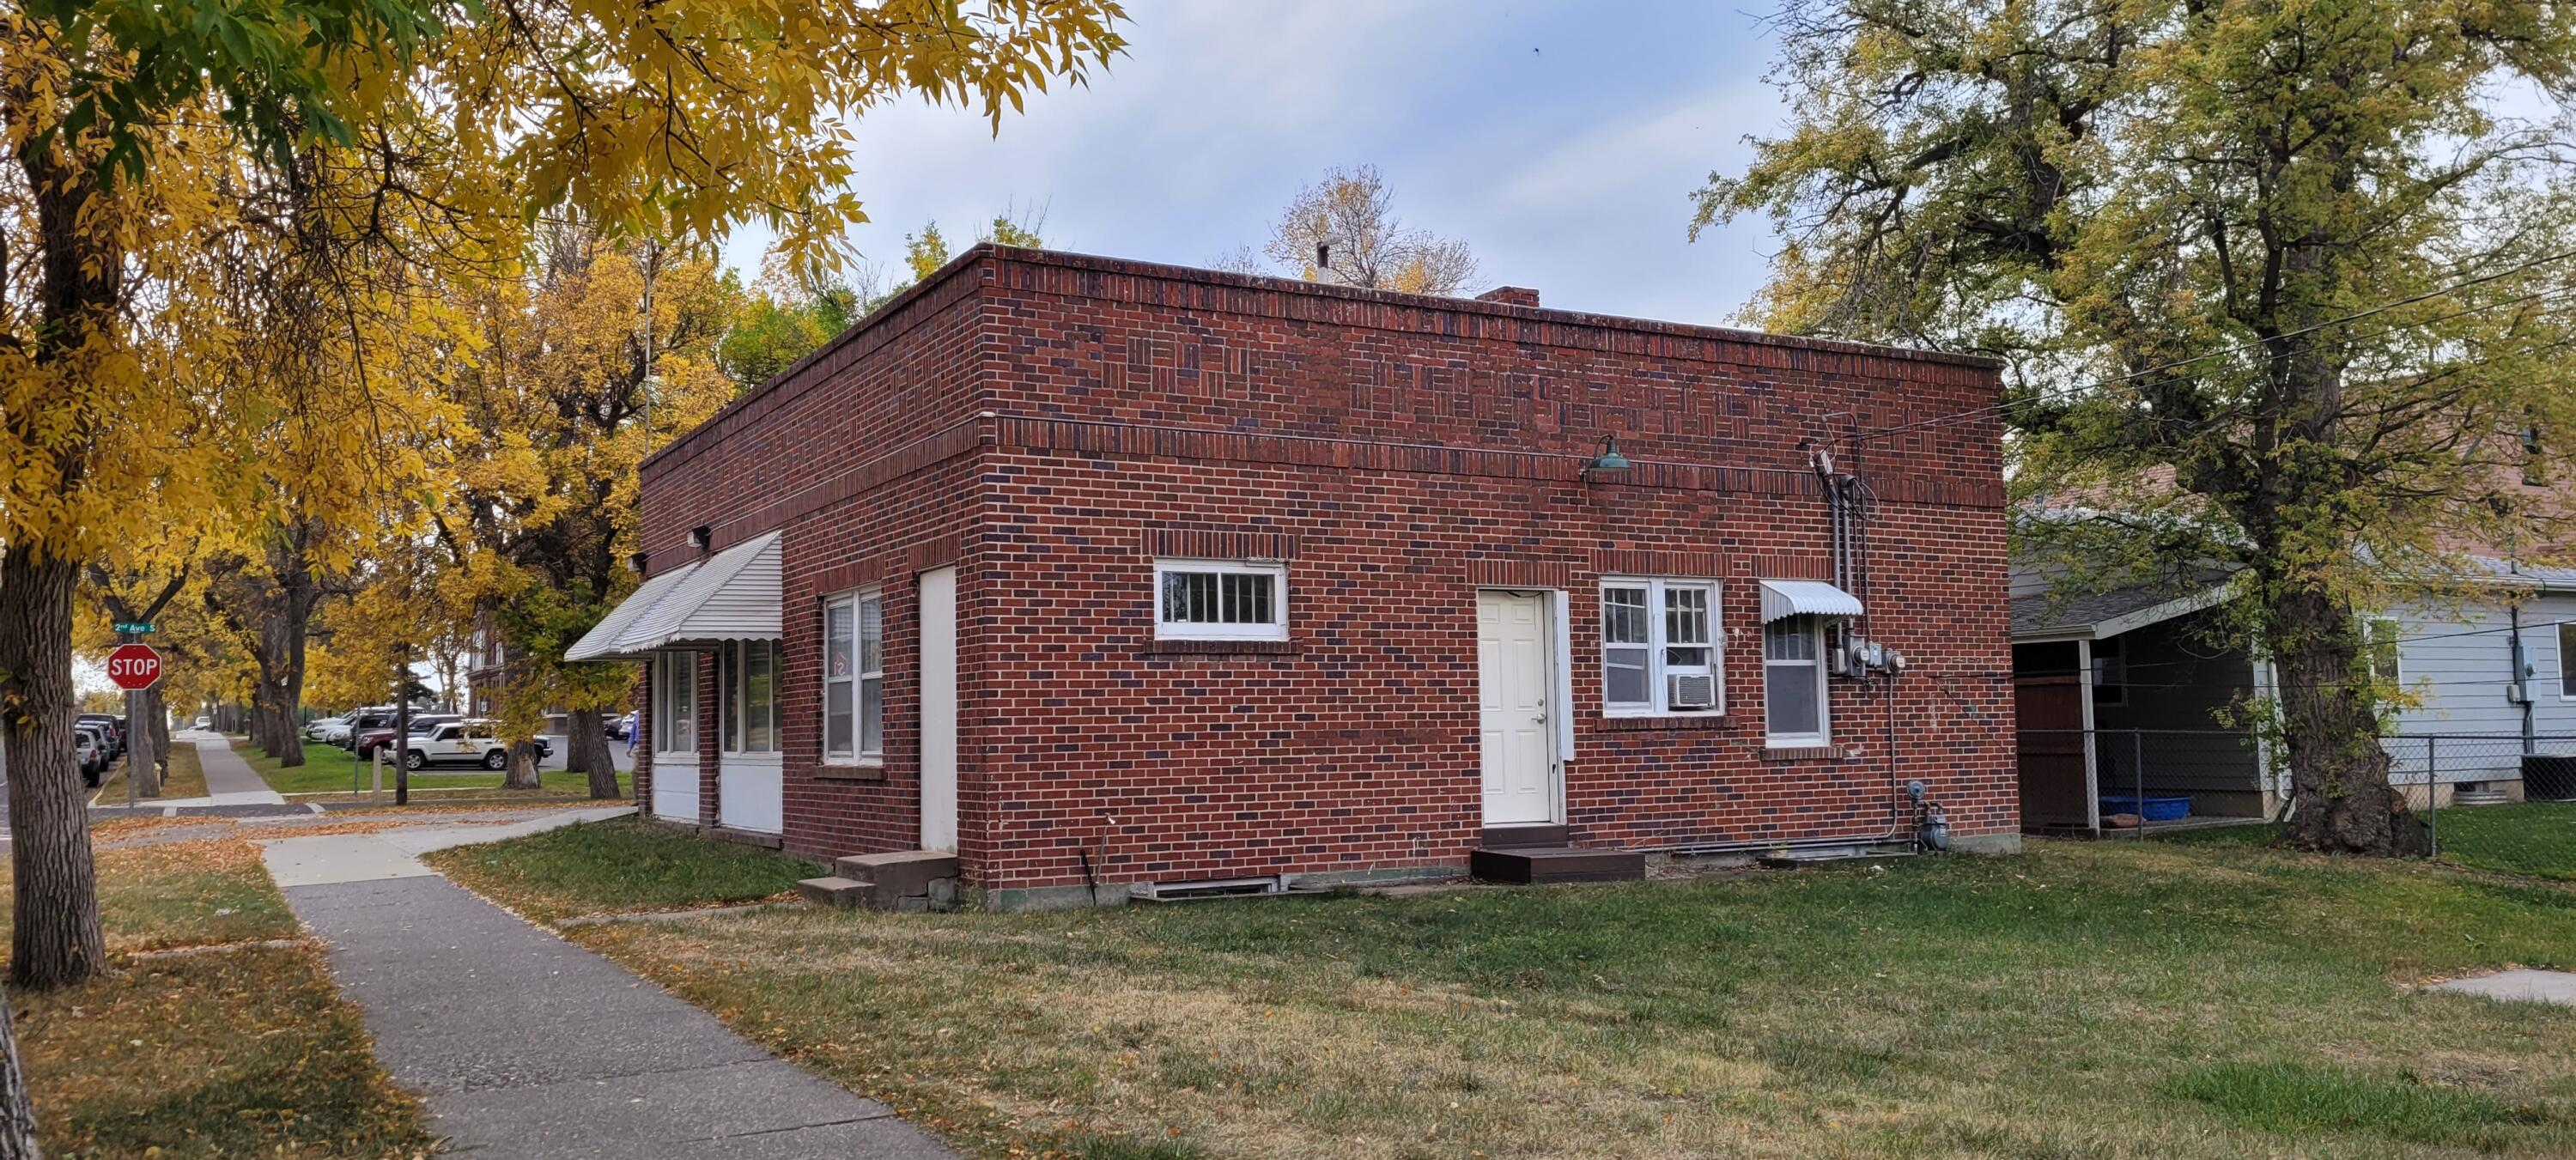 Approx 3128 SF of interior space on approx. 0.172 acre lot. Built in 1965; shelled and ready for remodel. Zoned R-3. Buyer to verify its intended use with City of Great Falls. Permissible uses include residential, group . home, community garden, amateur radio station or home office. Driveway for off-street parking. Back yard. Across from GFHS and 8 blocks from 10th Avenue South. Central air. 8-10' wall height. 2020 Taxes: $169.56.